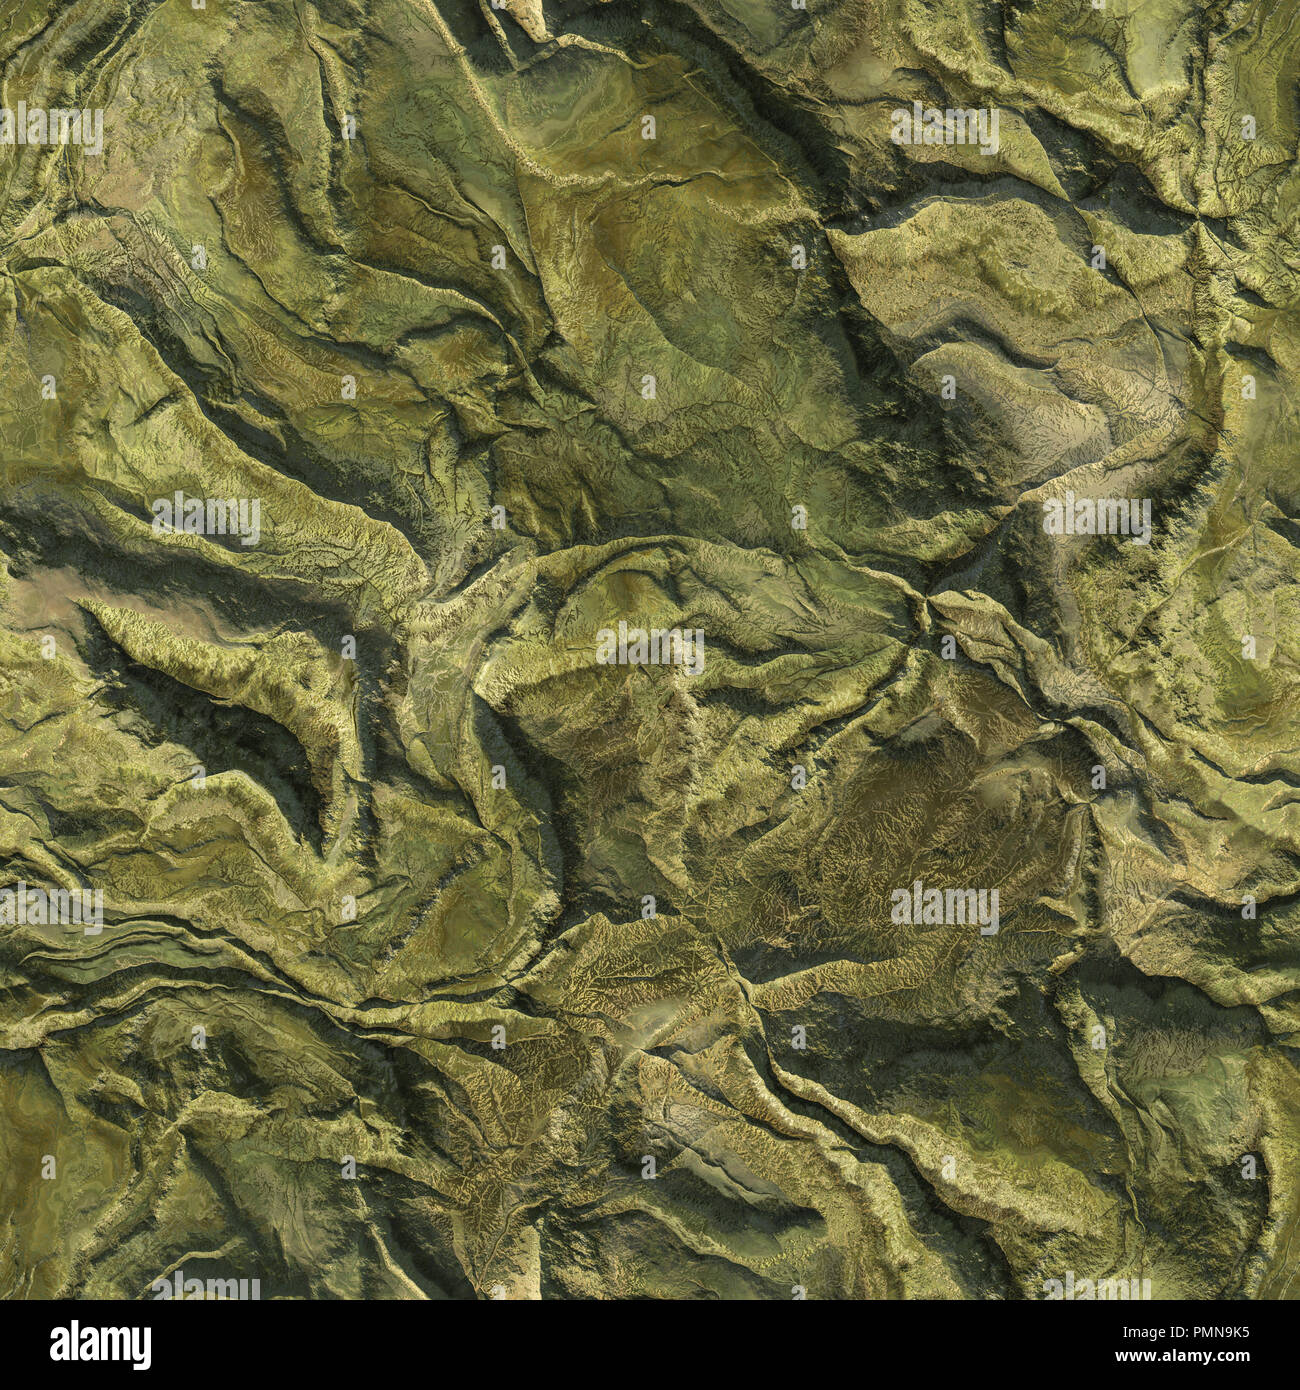 Aerial View From Air Plane Of Green Nature Mountains Seamless Texture Background 3d Illustration Stock Photo Alamy